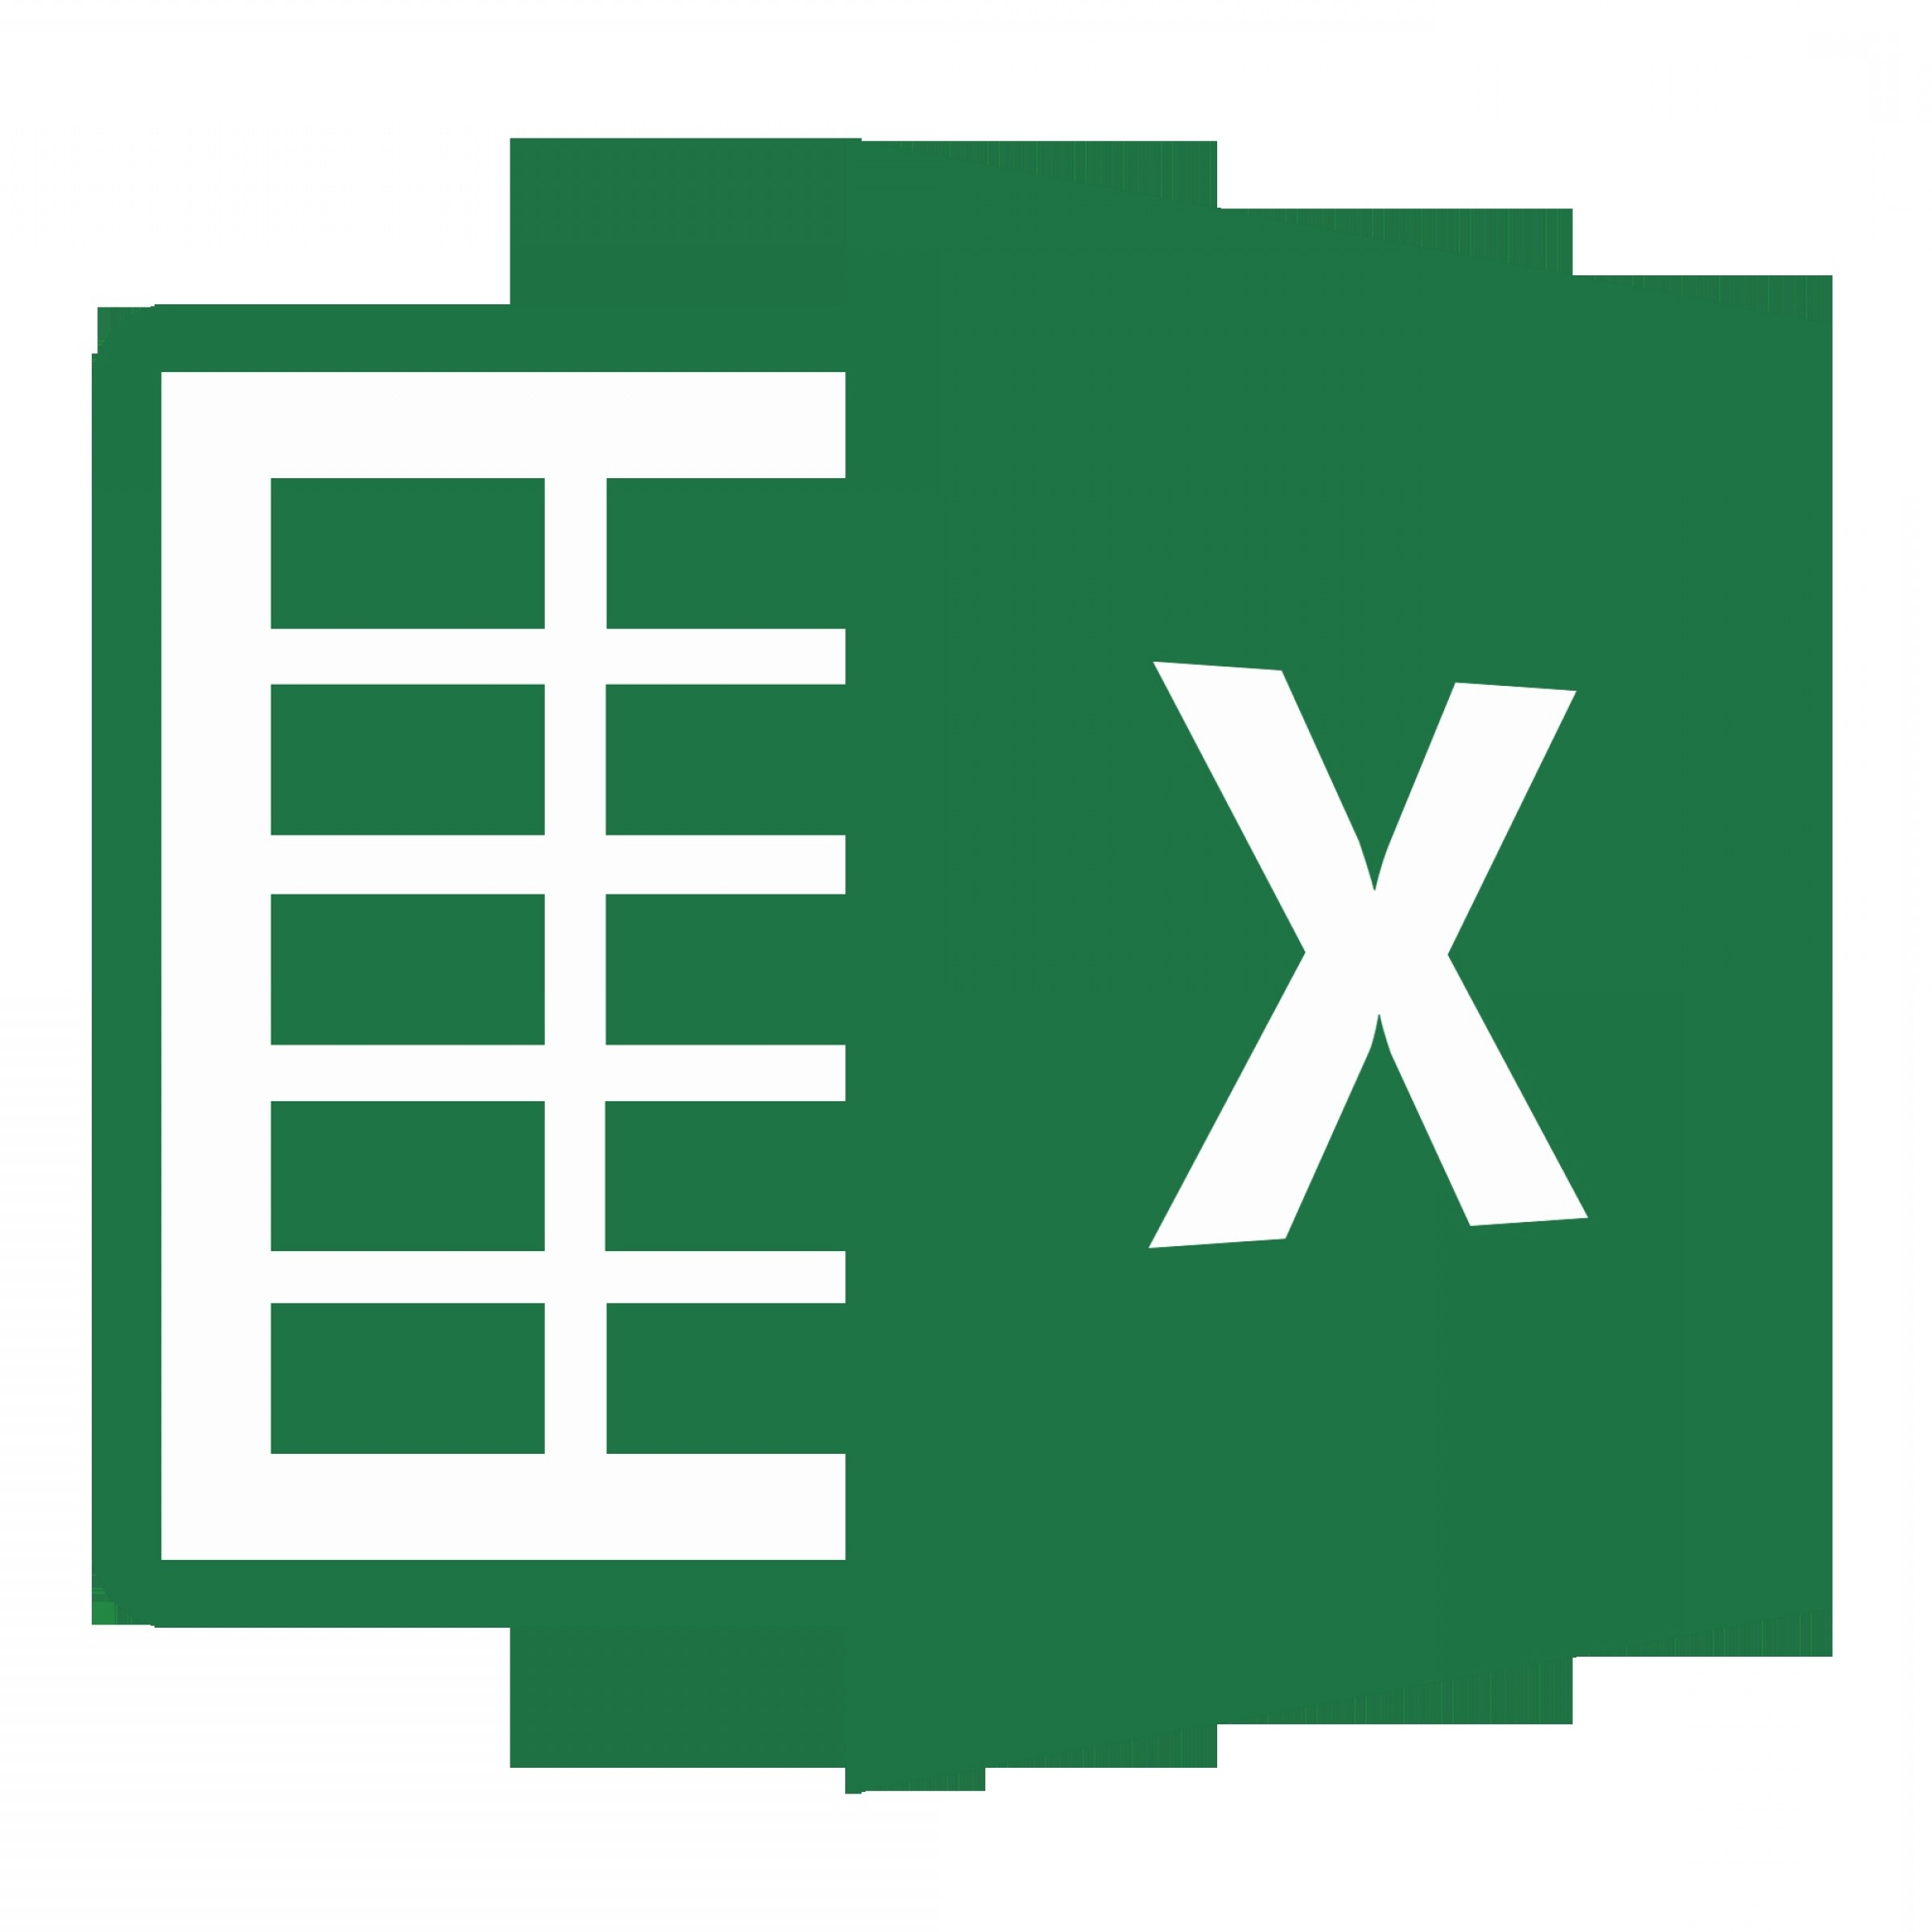 Excel Document Icon At Vectorified